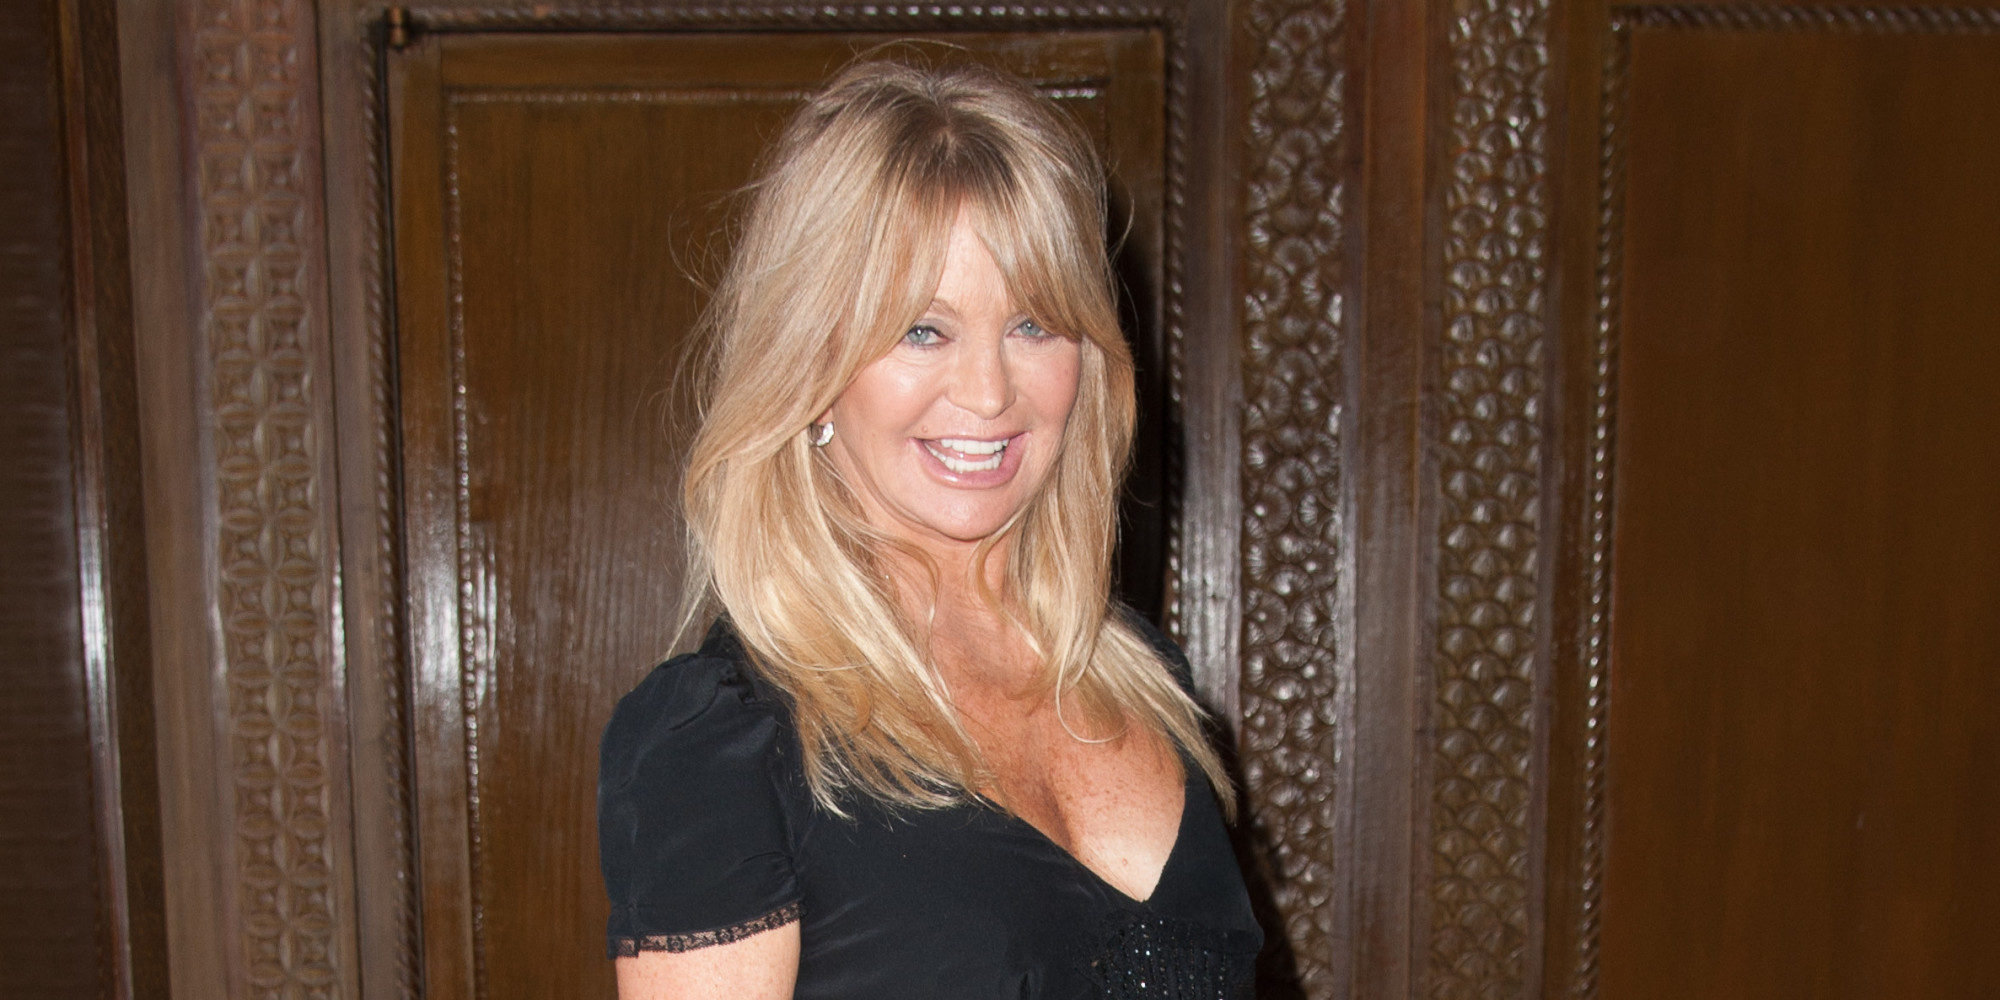 Goldie Hawn Signs With CAA, Fans Wonder If She's Returning To Show ...